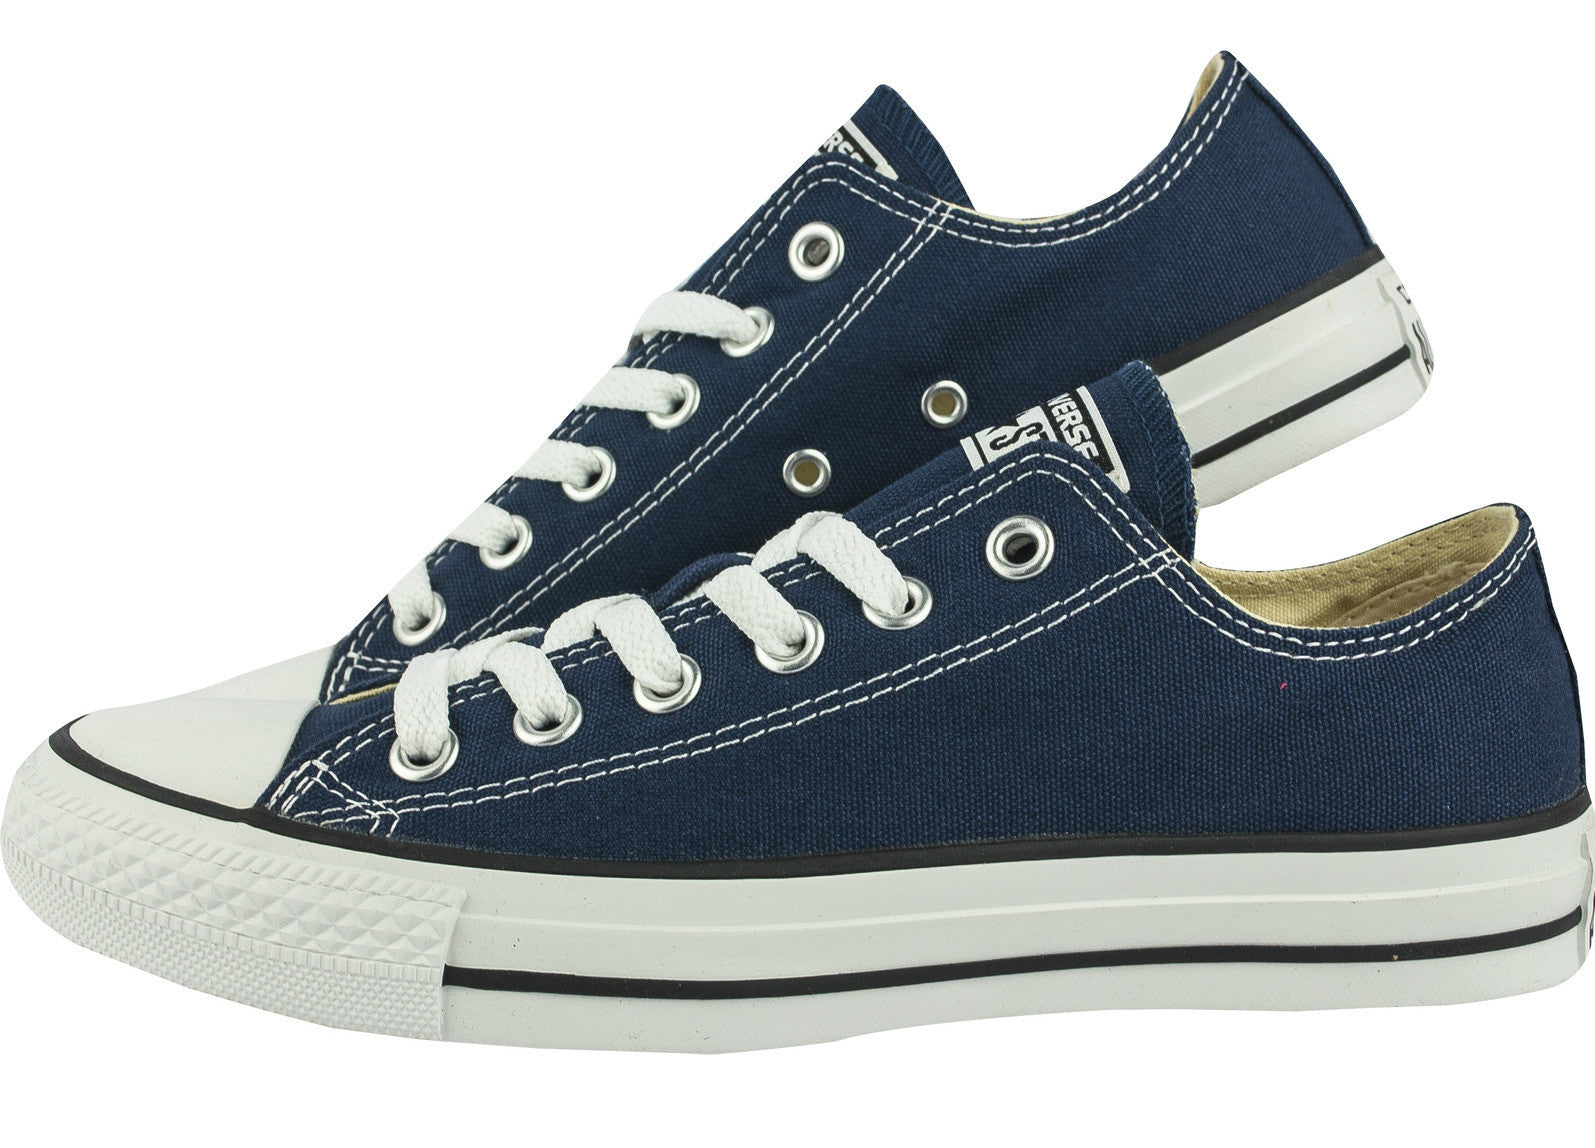 95e05d1e788a ... Converse Classic Chuck Taylor All Star Navy Blue Low Tops M9697C  Sneaker Men Women ...